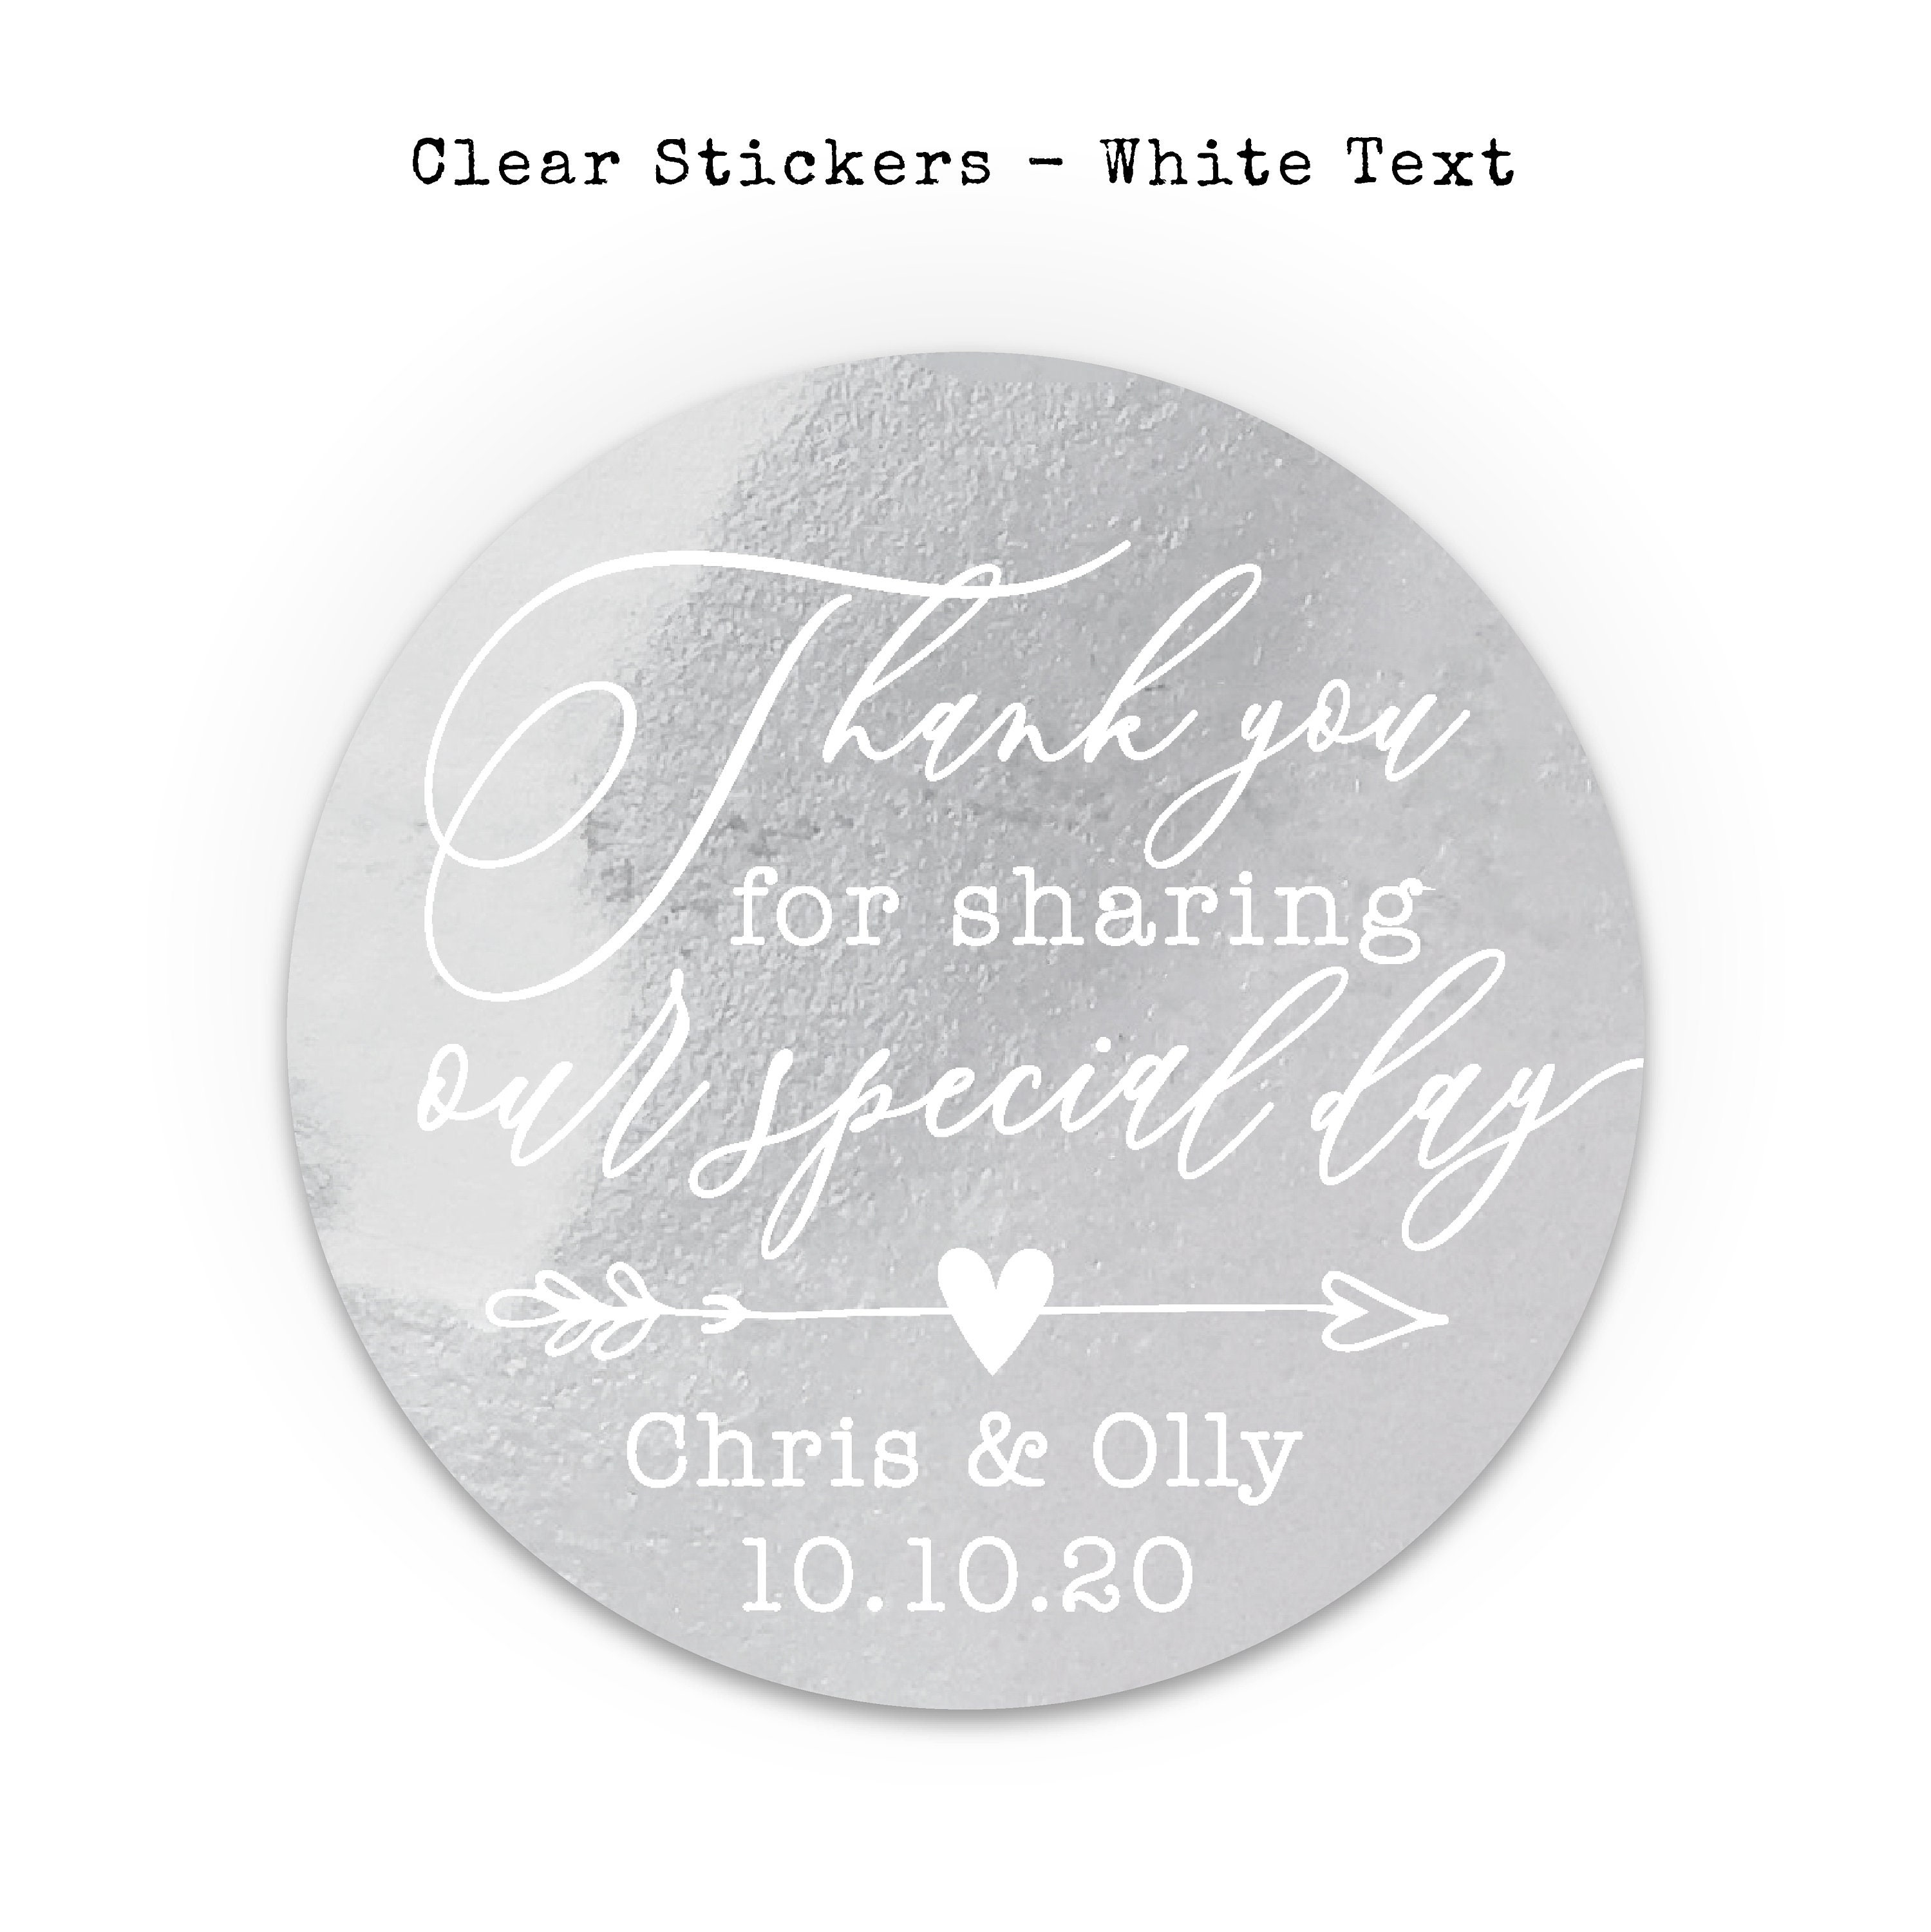 Clear stickers personalised transparent stickers wedding custom sticker labels